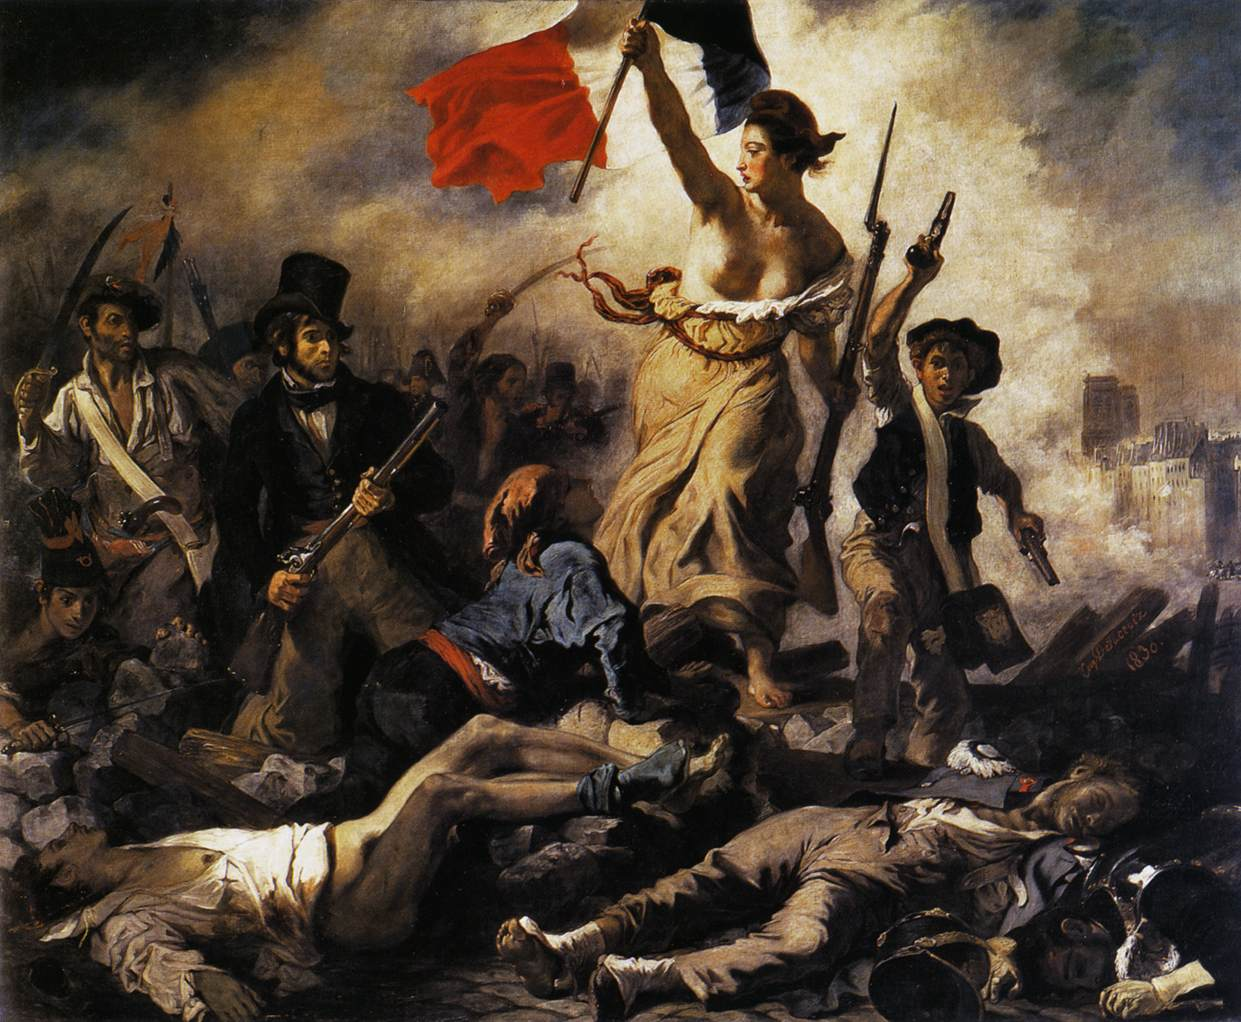 Delacroix Liberty Painting Defaced In